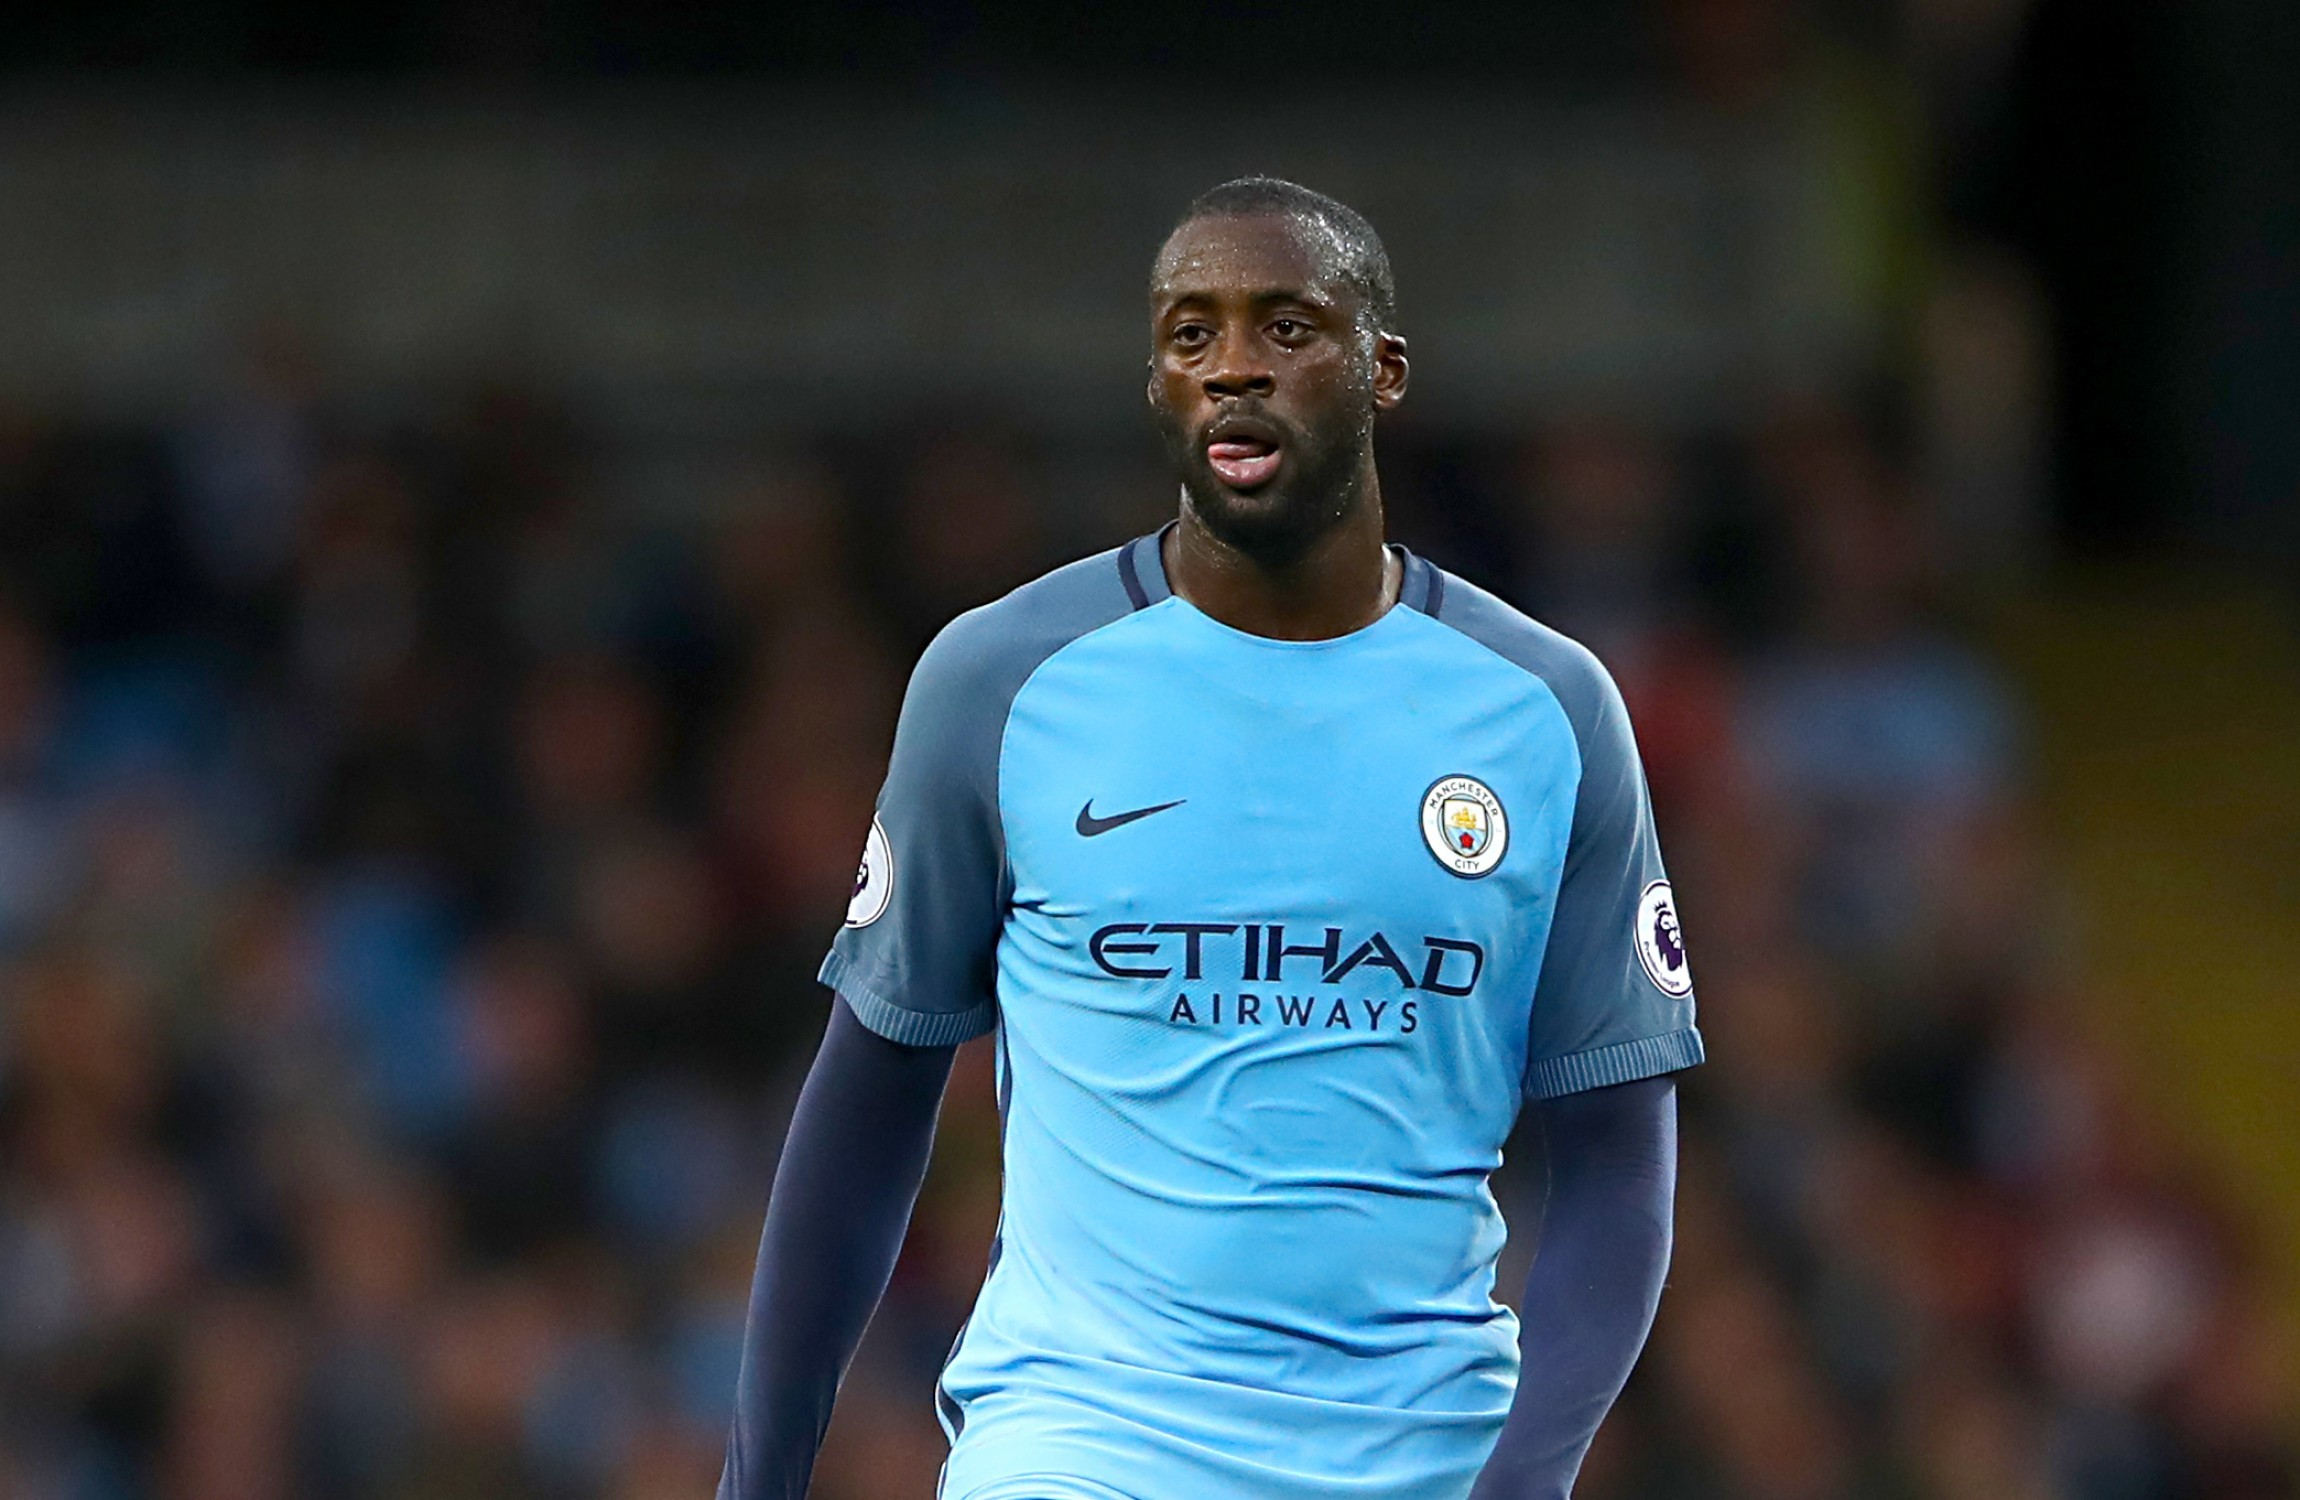 Yaya Toure to donate six figure sum to Manchester victims